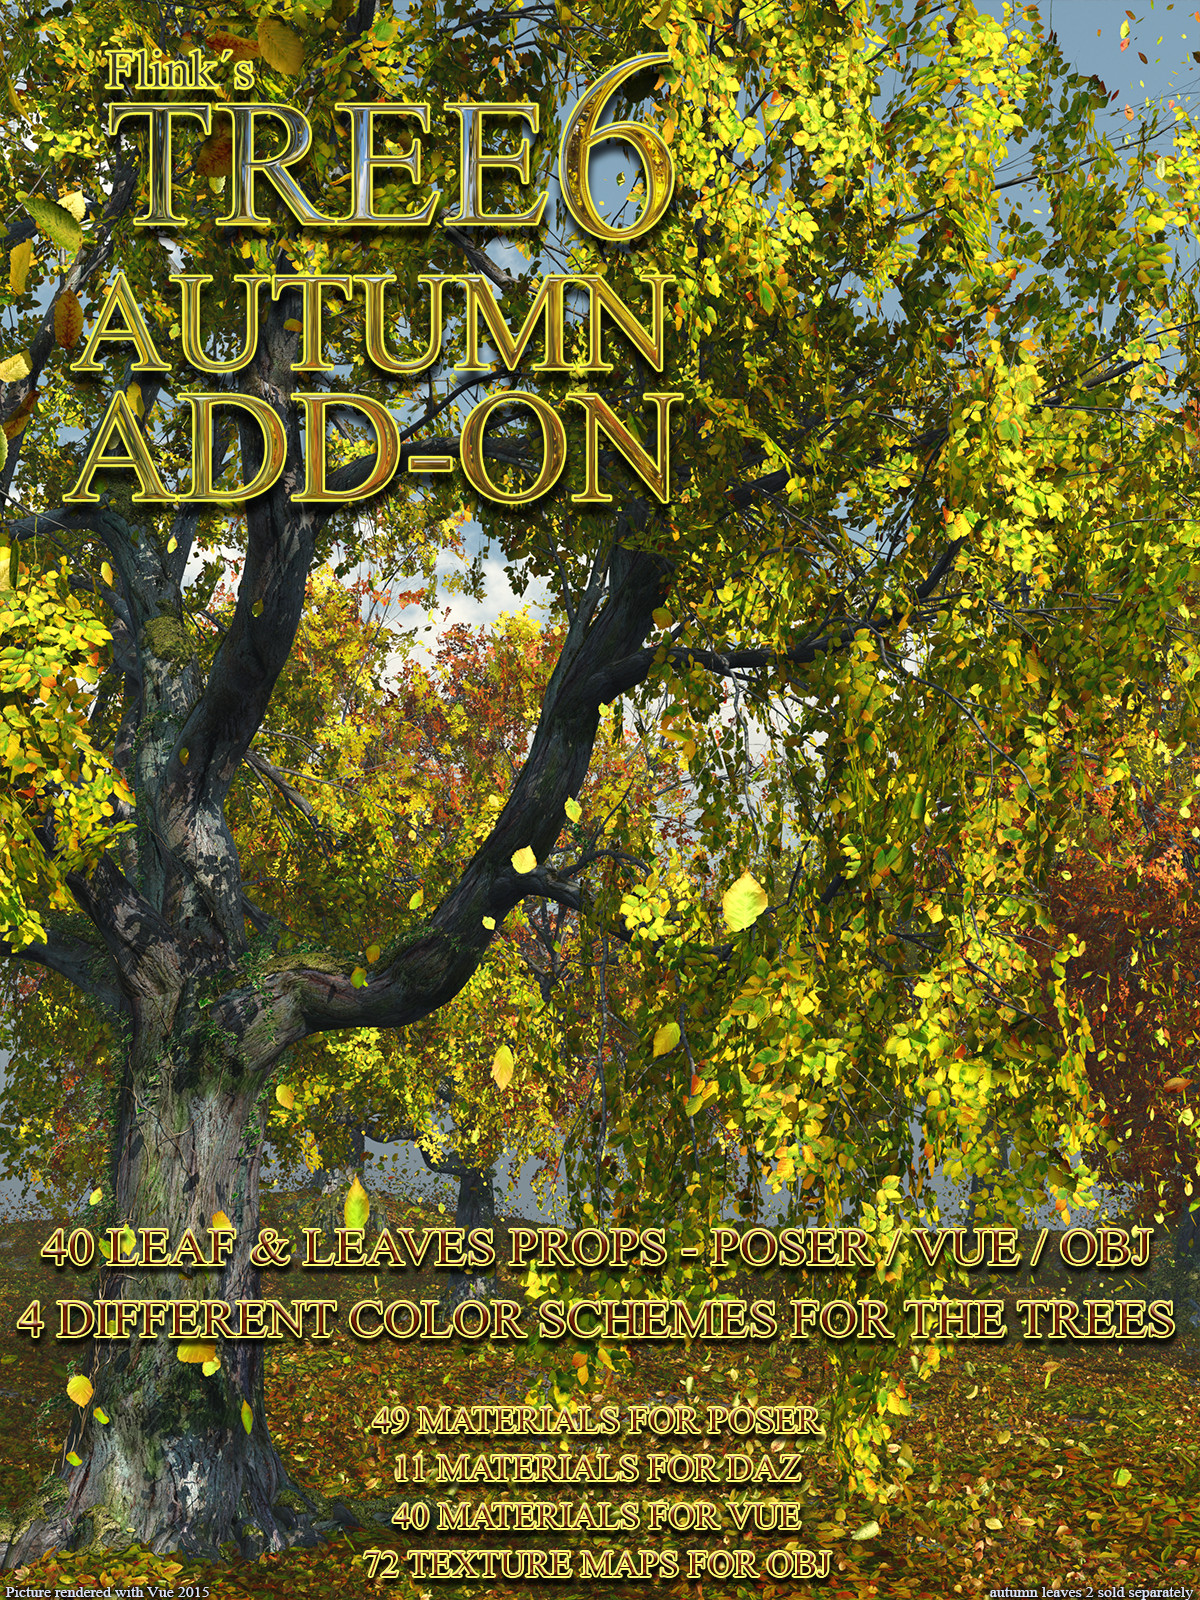 Flinks Tree 6 - Autumn Add-on